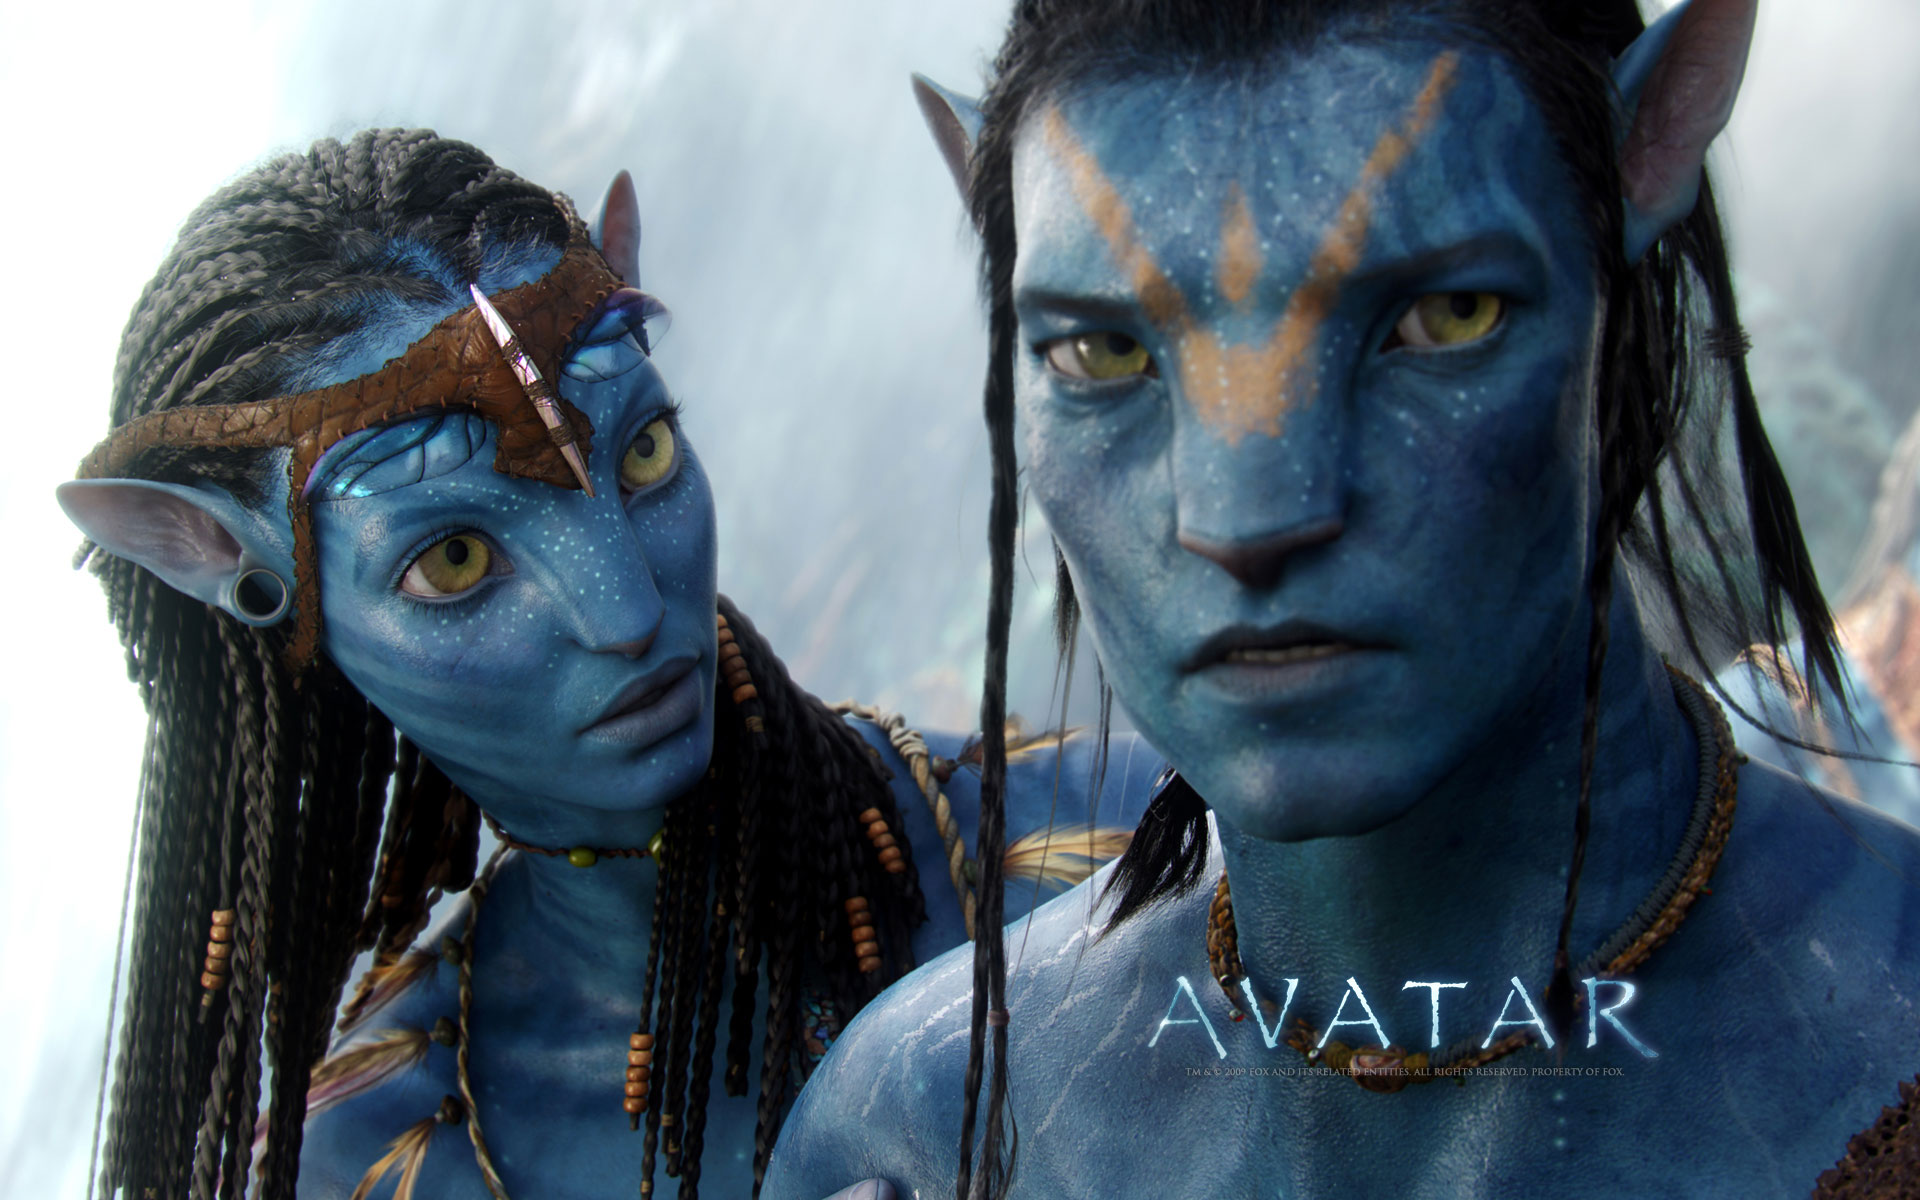 Download Avatar Wallpaper